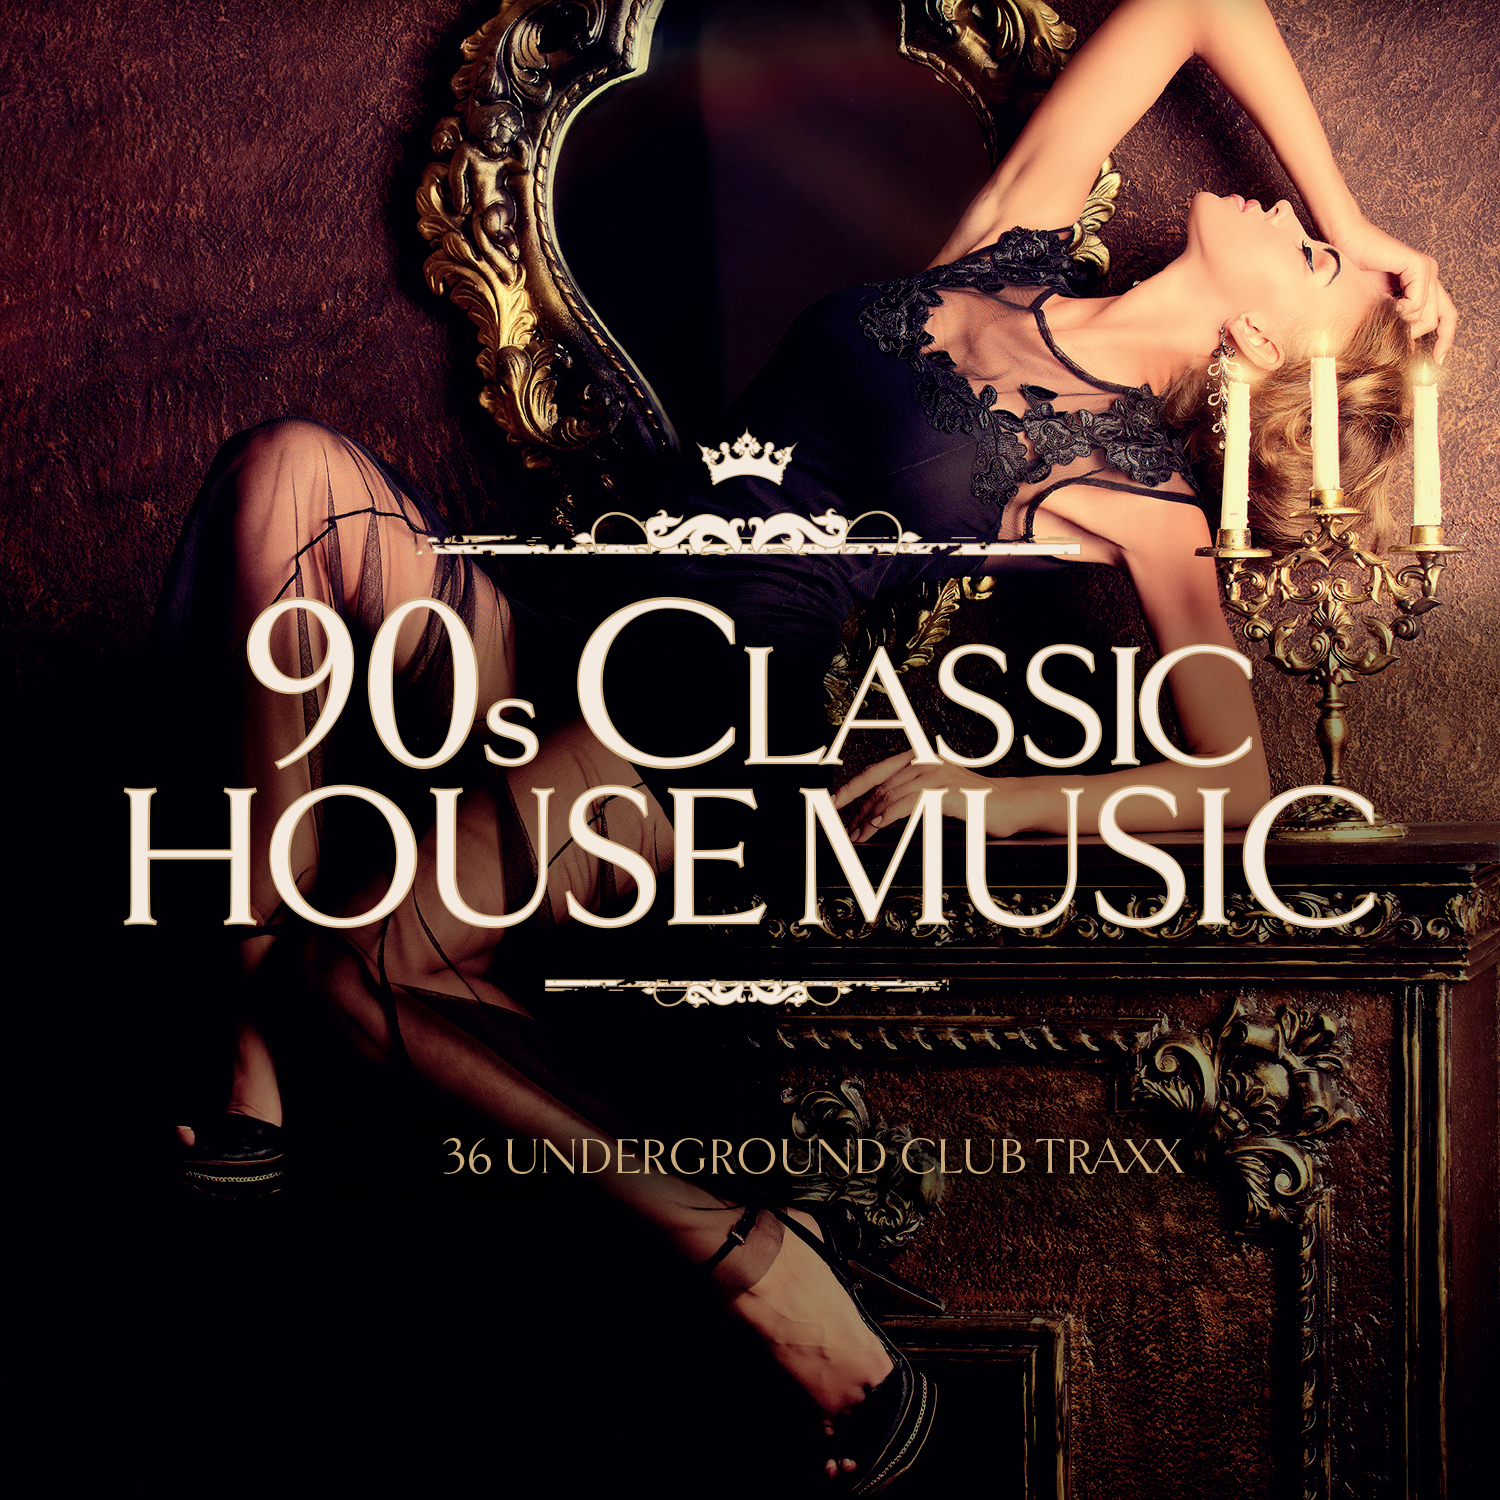 90s classic house music fatti for Classic house from the 90s